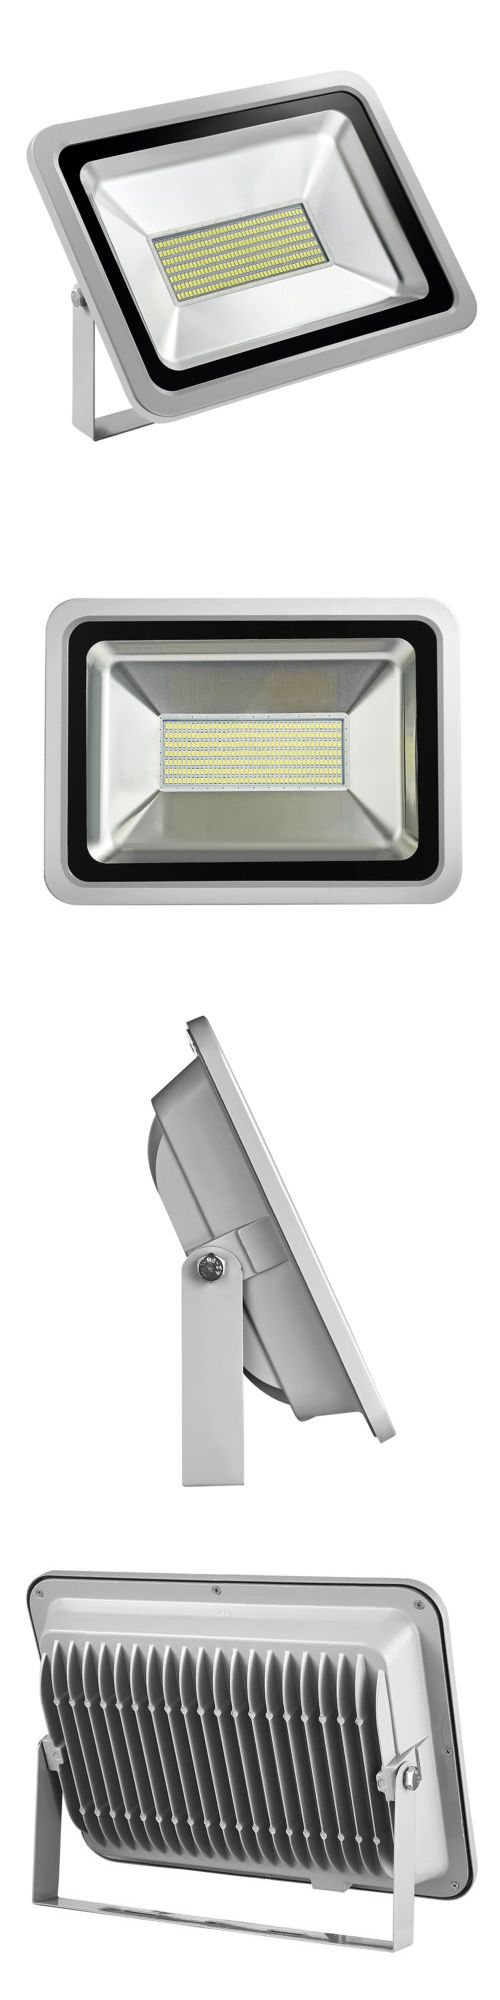 Outdoor Security and Floodlights 183393: 1 X 150W Cool White Led Smd Flood Light Garden Spot Lamp Waterproof Ip65 Ac 110V -> BUY IT NOW ONLY: $36.19 on eBay!